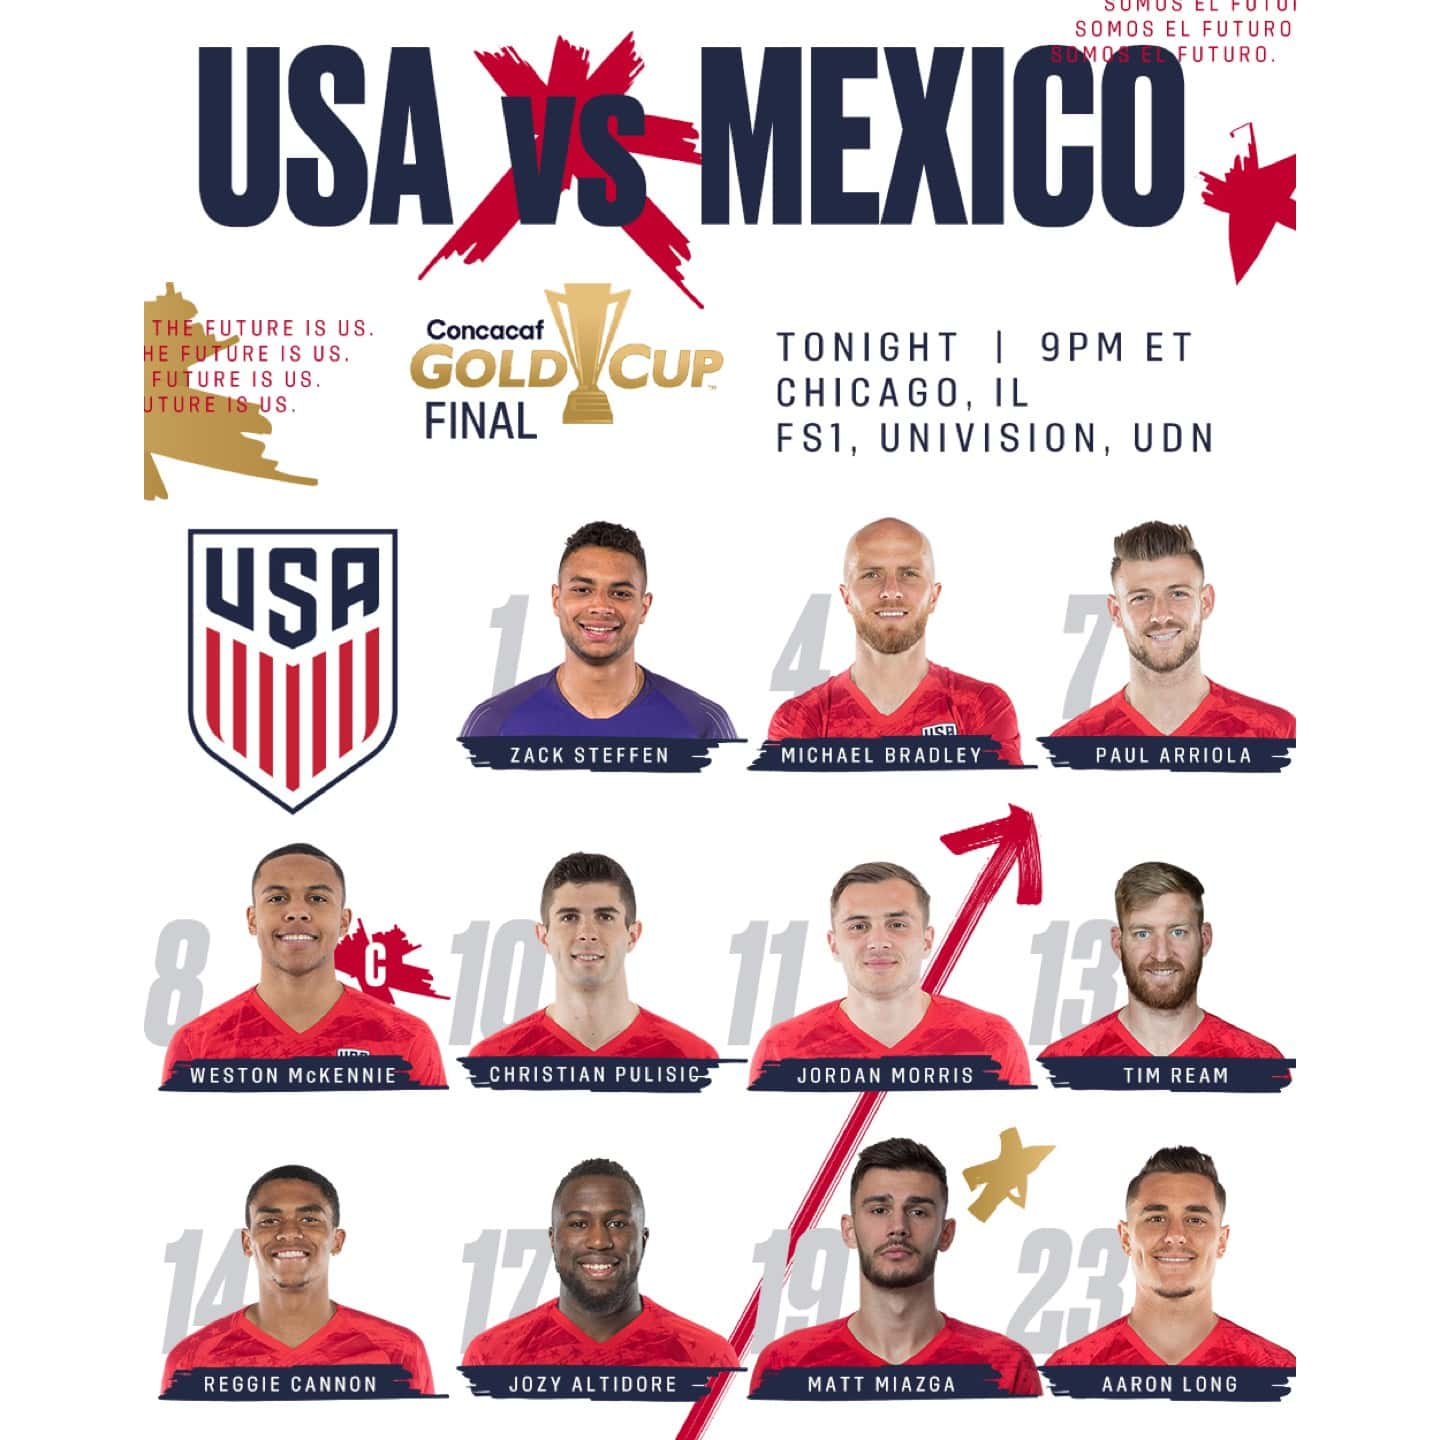 Gold Cup 2019: USA vs. Mexico - Lineup, Schedule, TV Channels, Start Time & Bracket